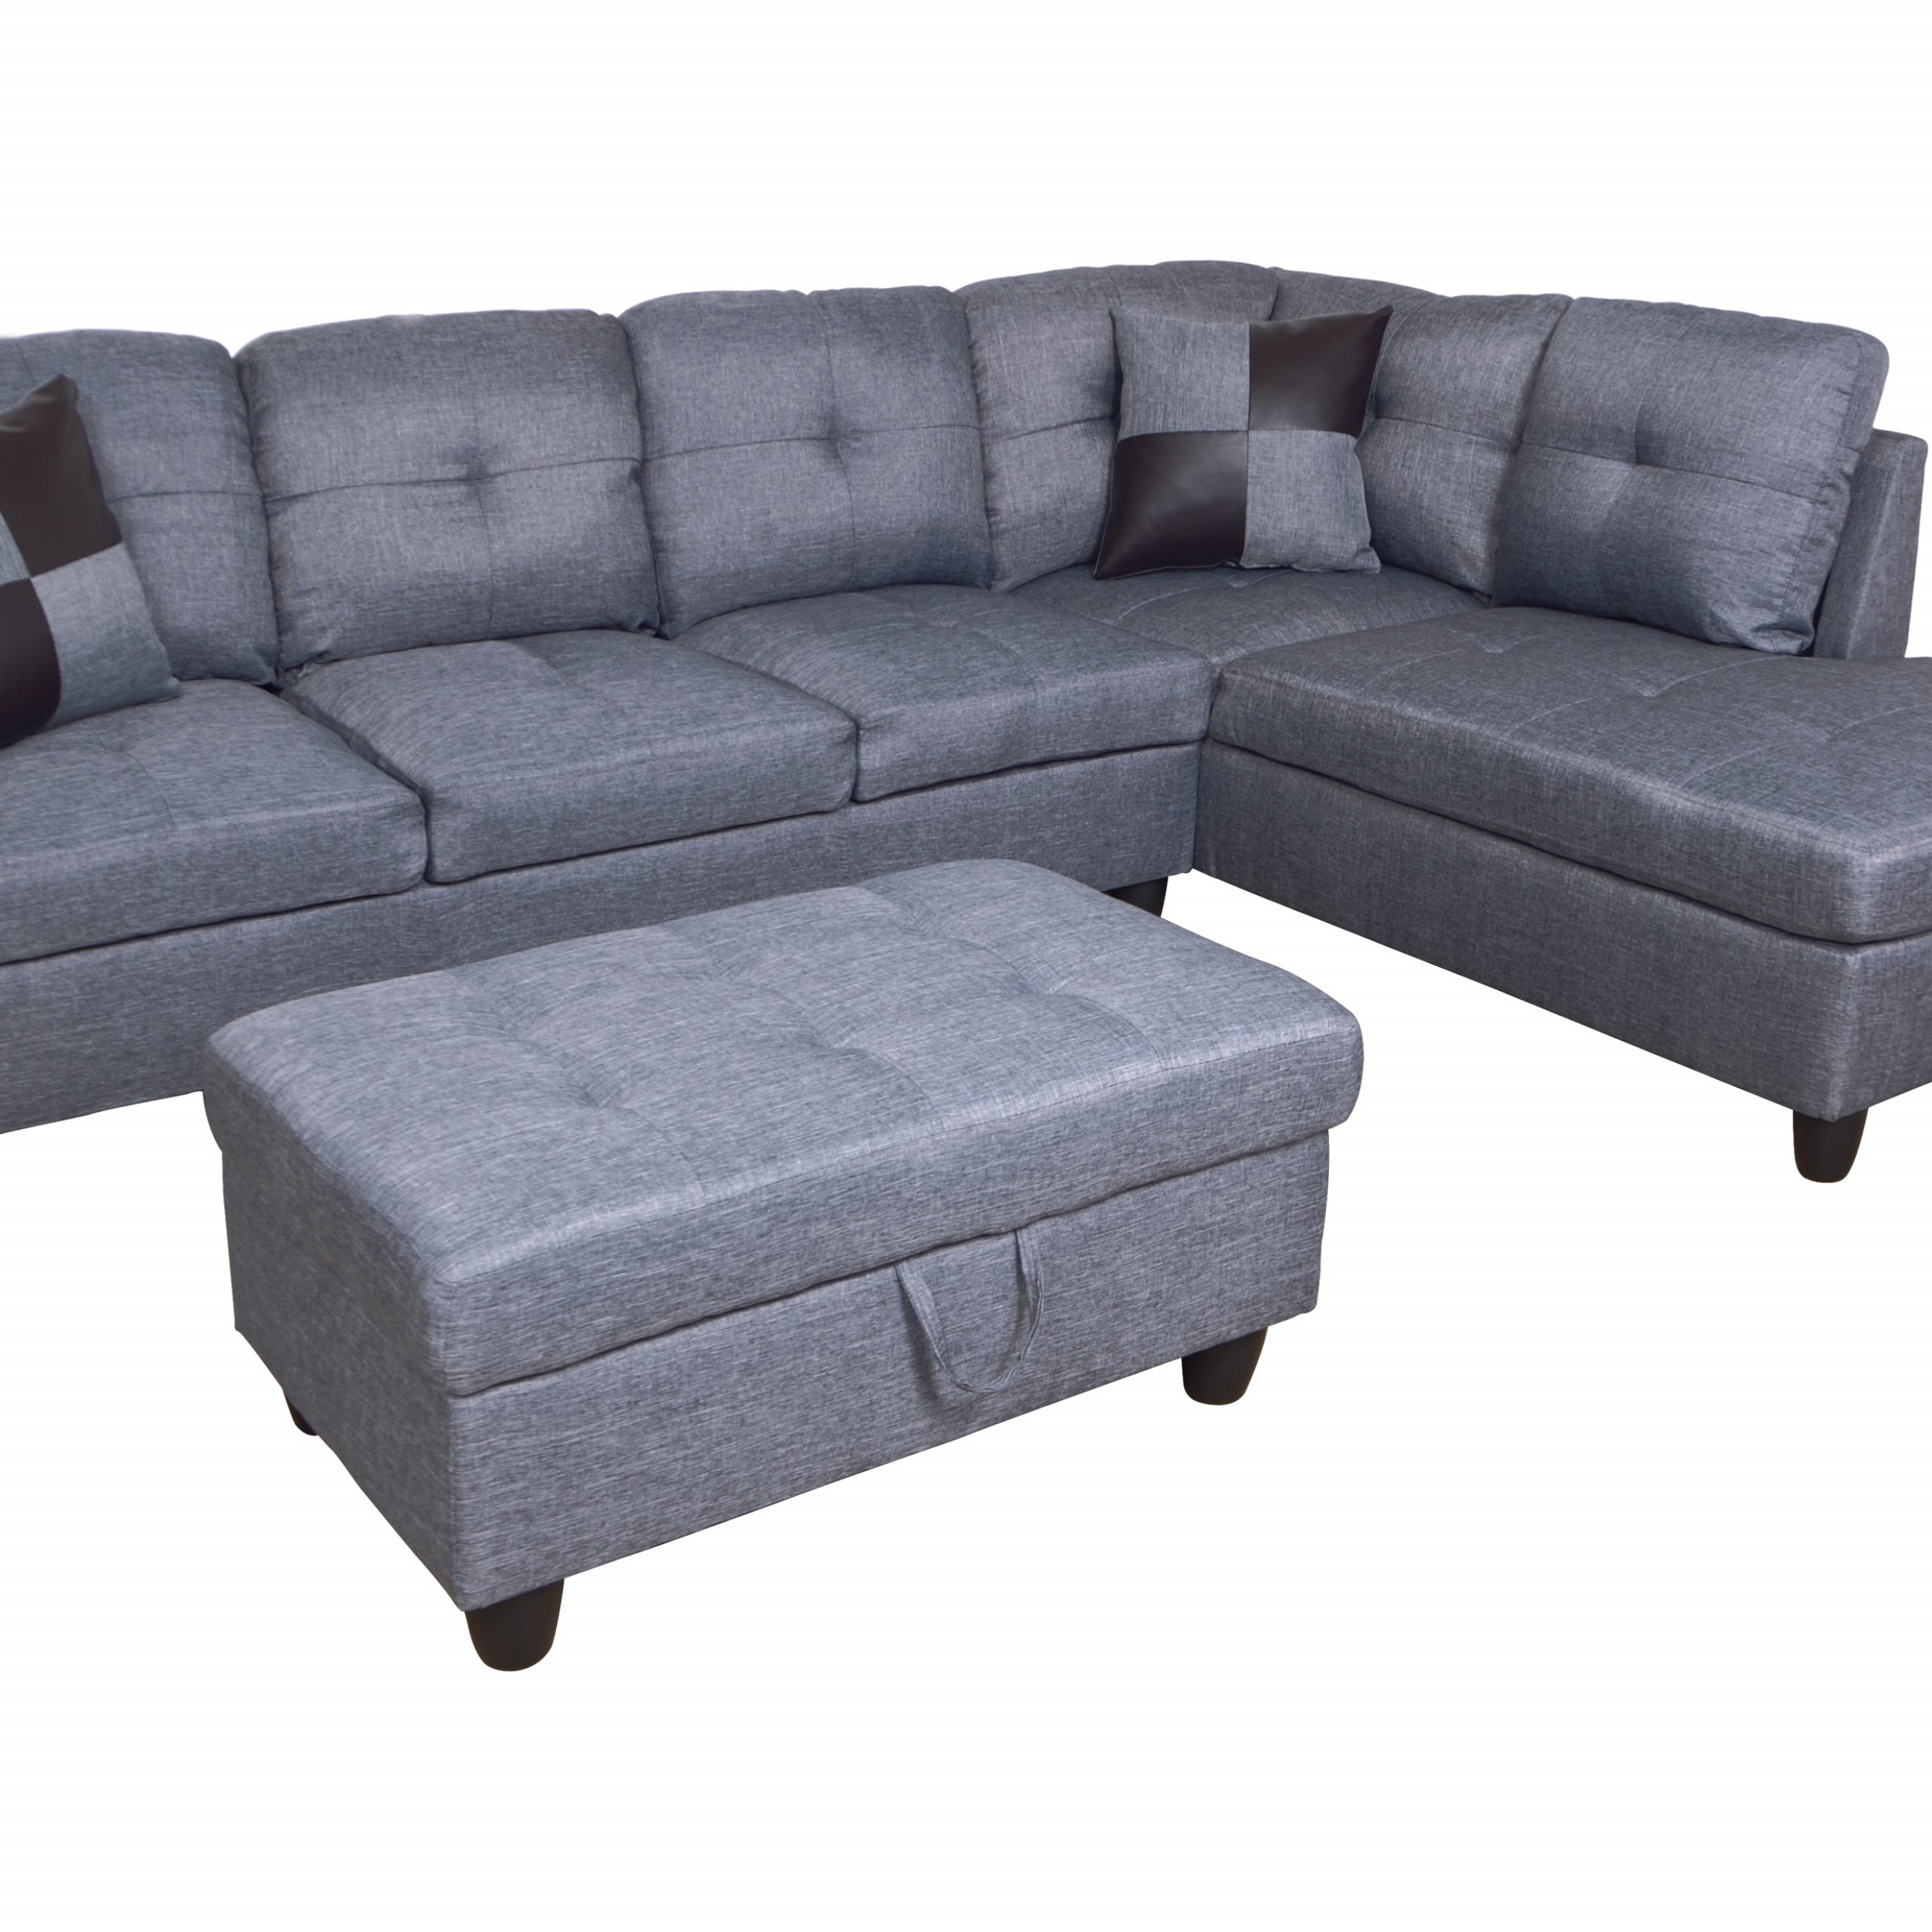 Celine Sectional Futon Sofas With Storage Reclining Couch With Preferred Hermann Left Chaise Sectional Sofa With Storage Ottoman (View 2 of 20)